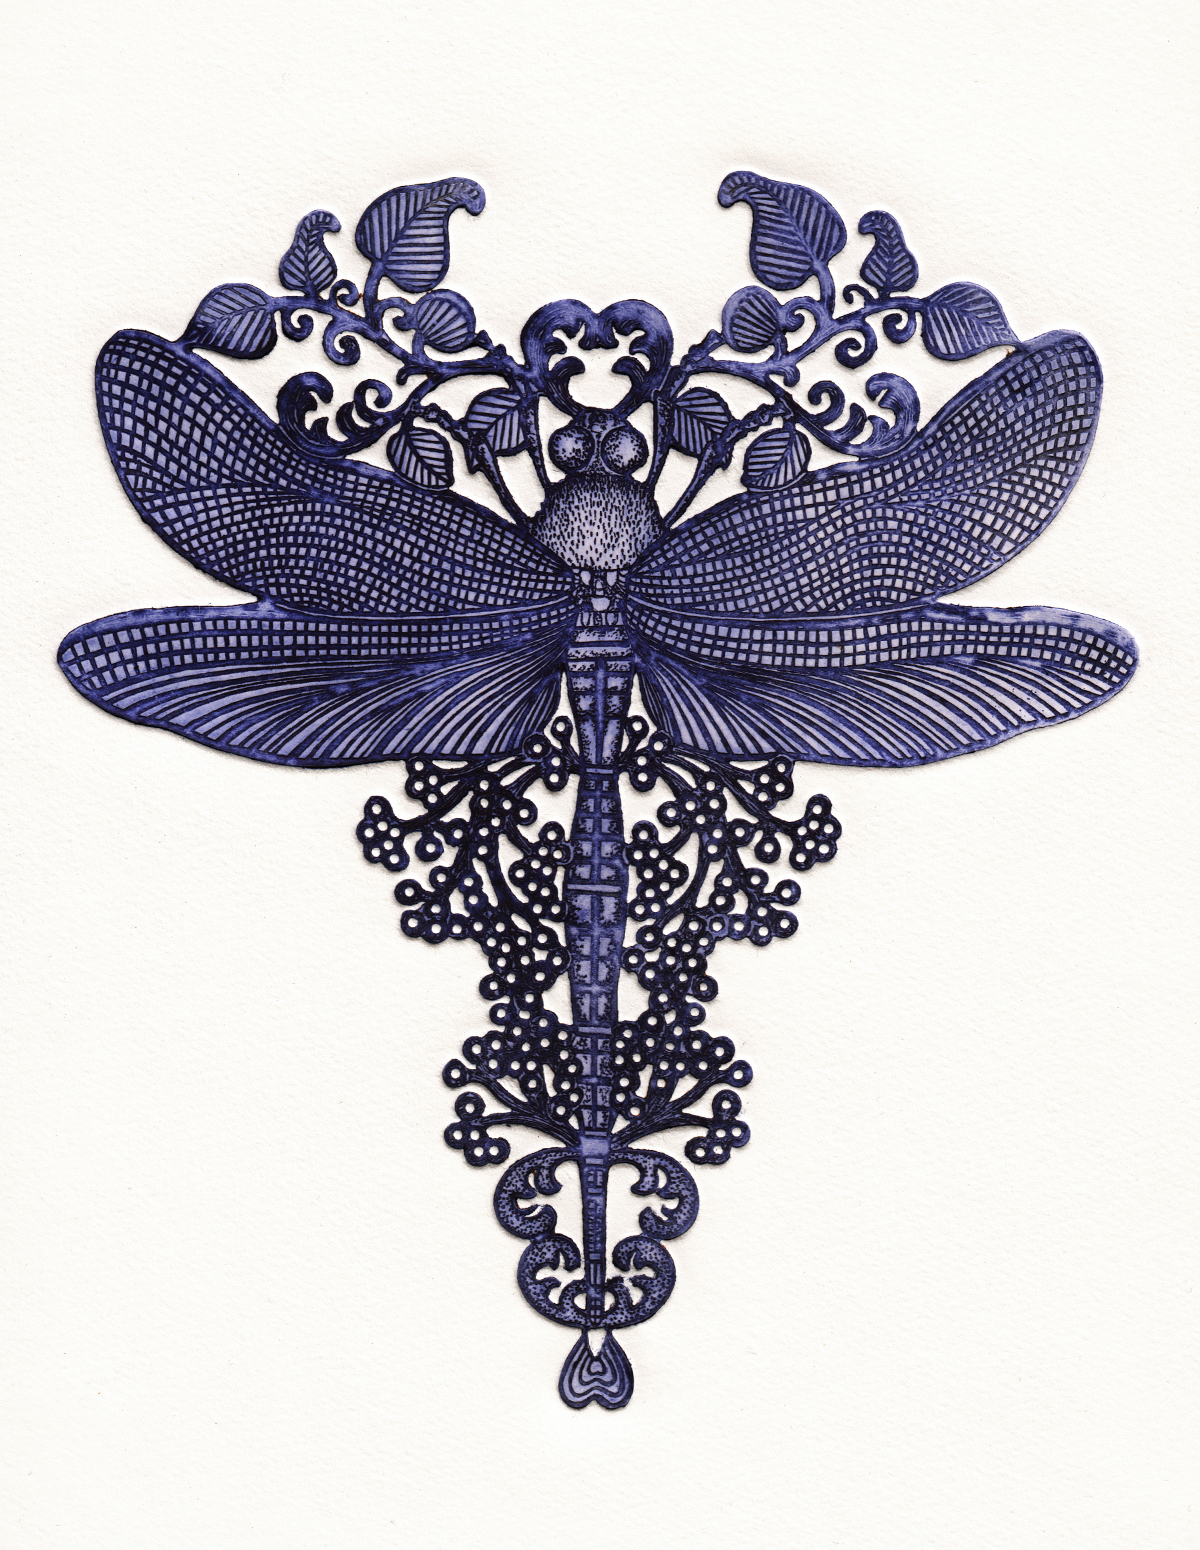 N°17 Etchings- Dragonfly